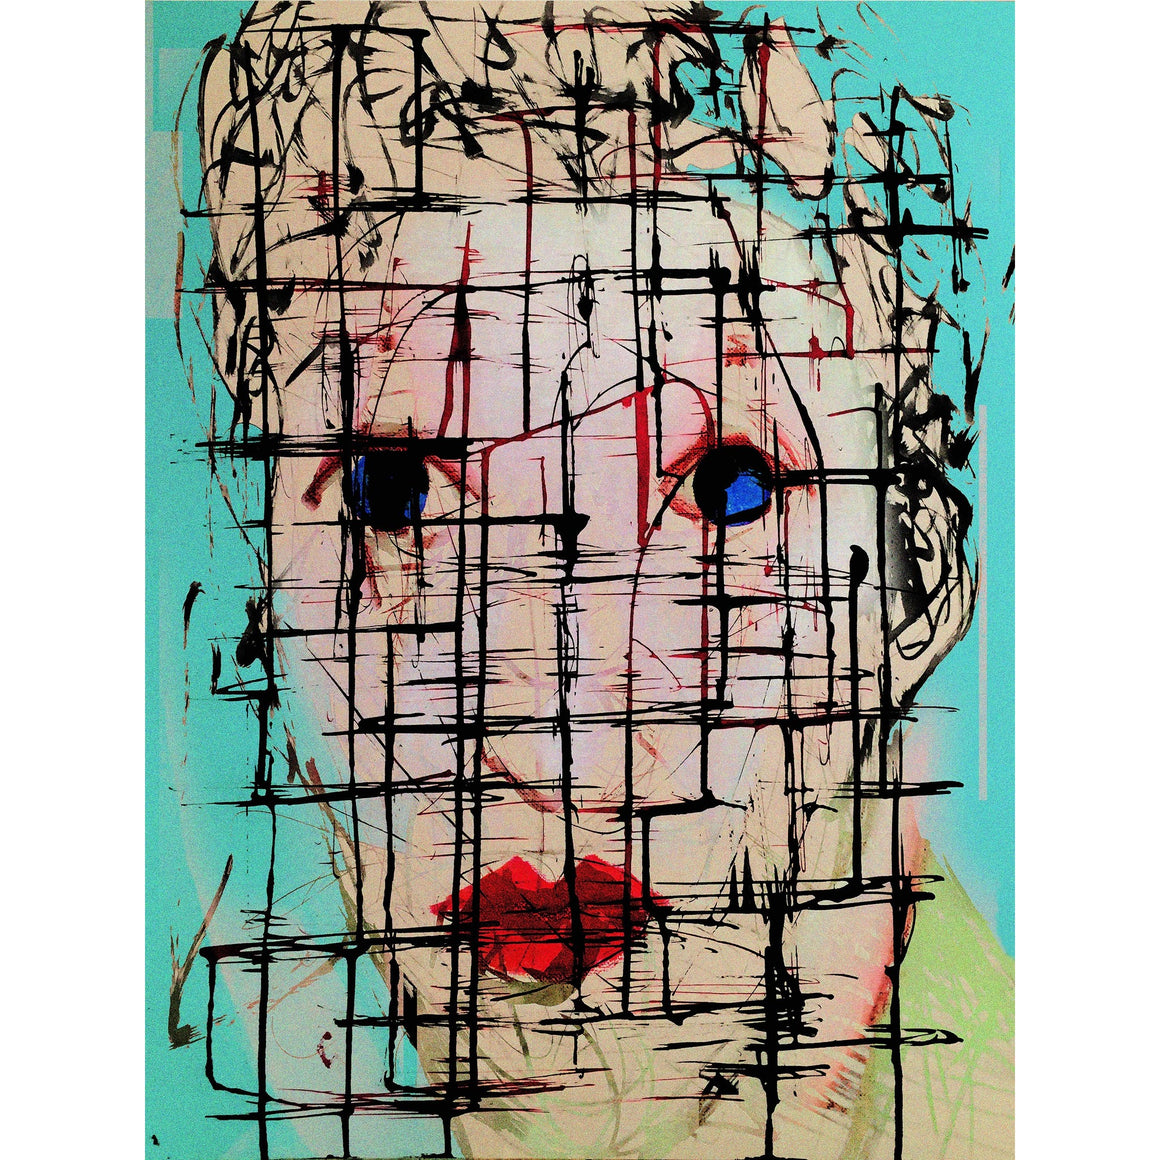 'Face 2' Digital Collage Limited Edition Fine Art Painting